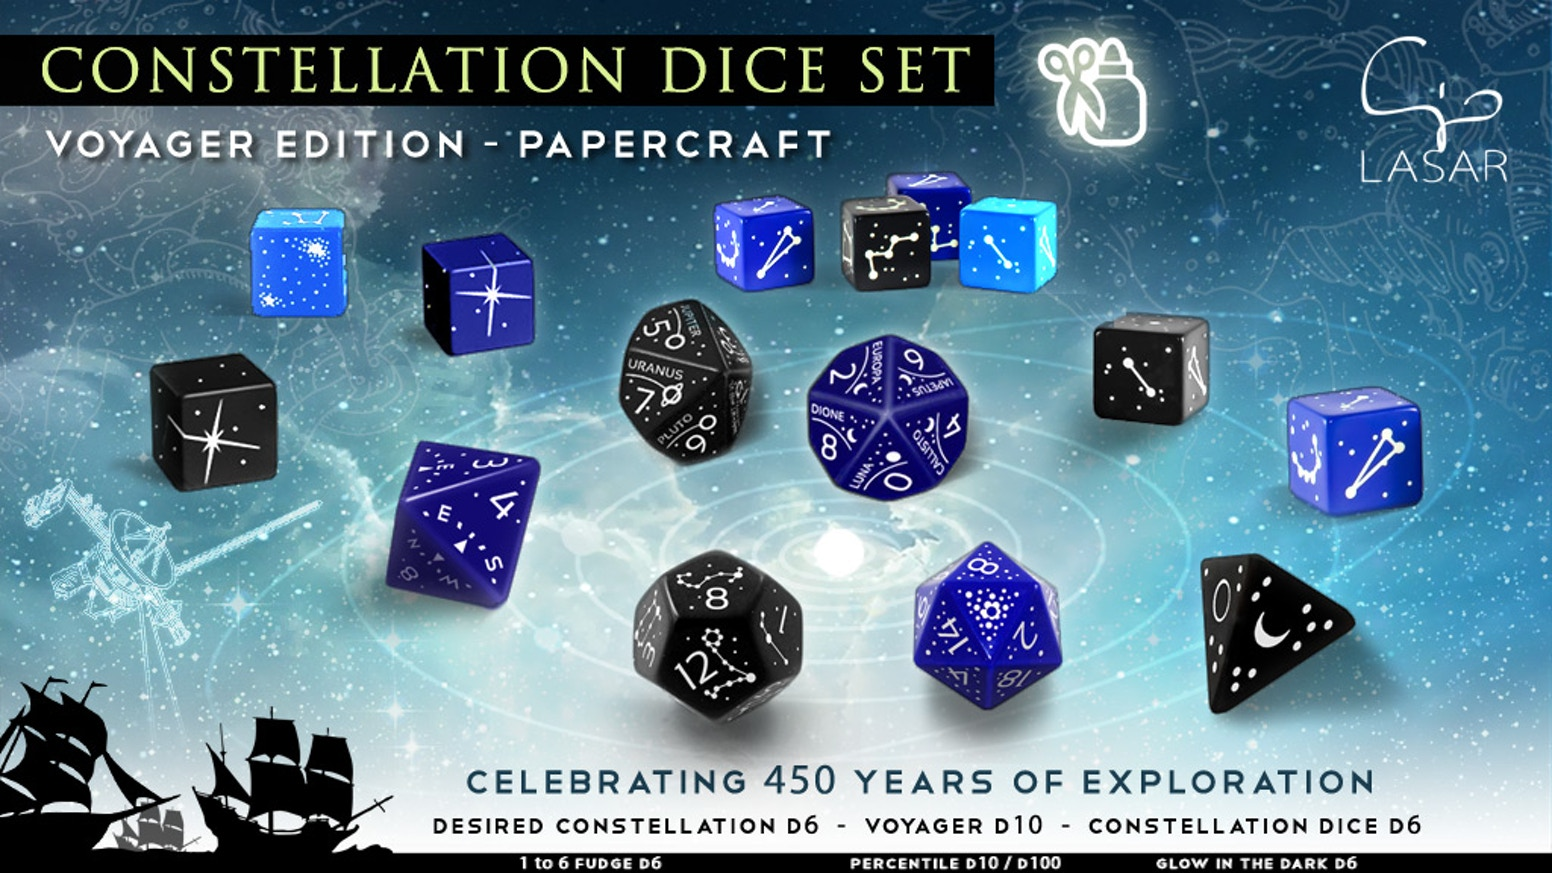 9 pdf templates to build your supersized Constellation Dice set.